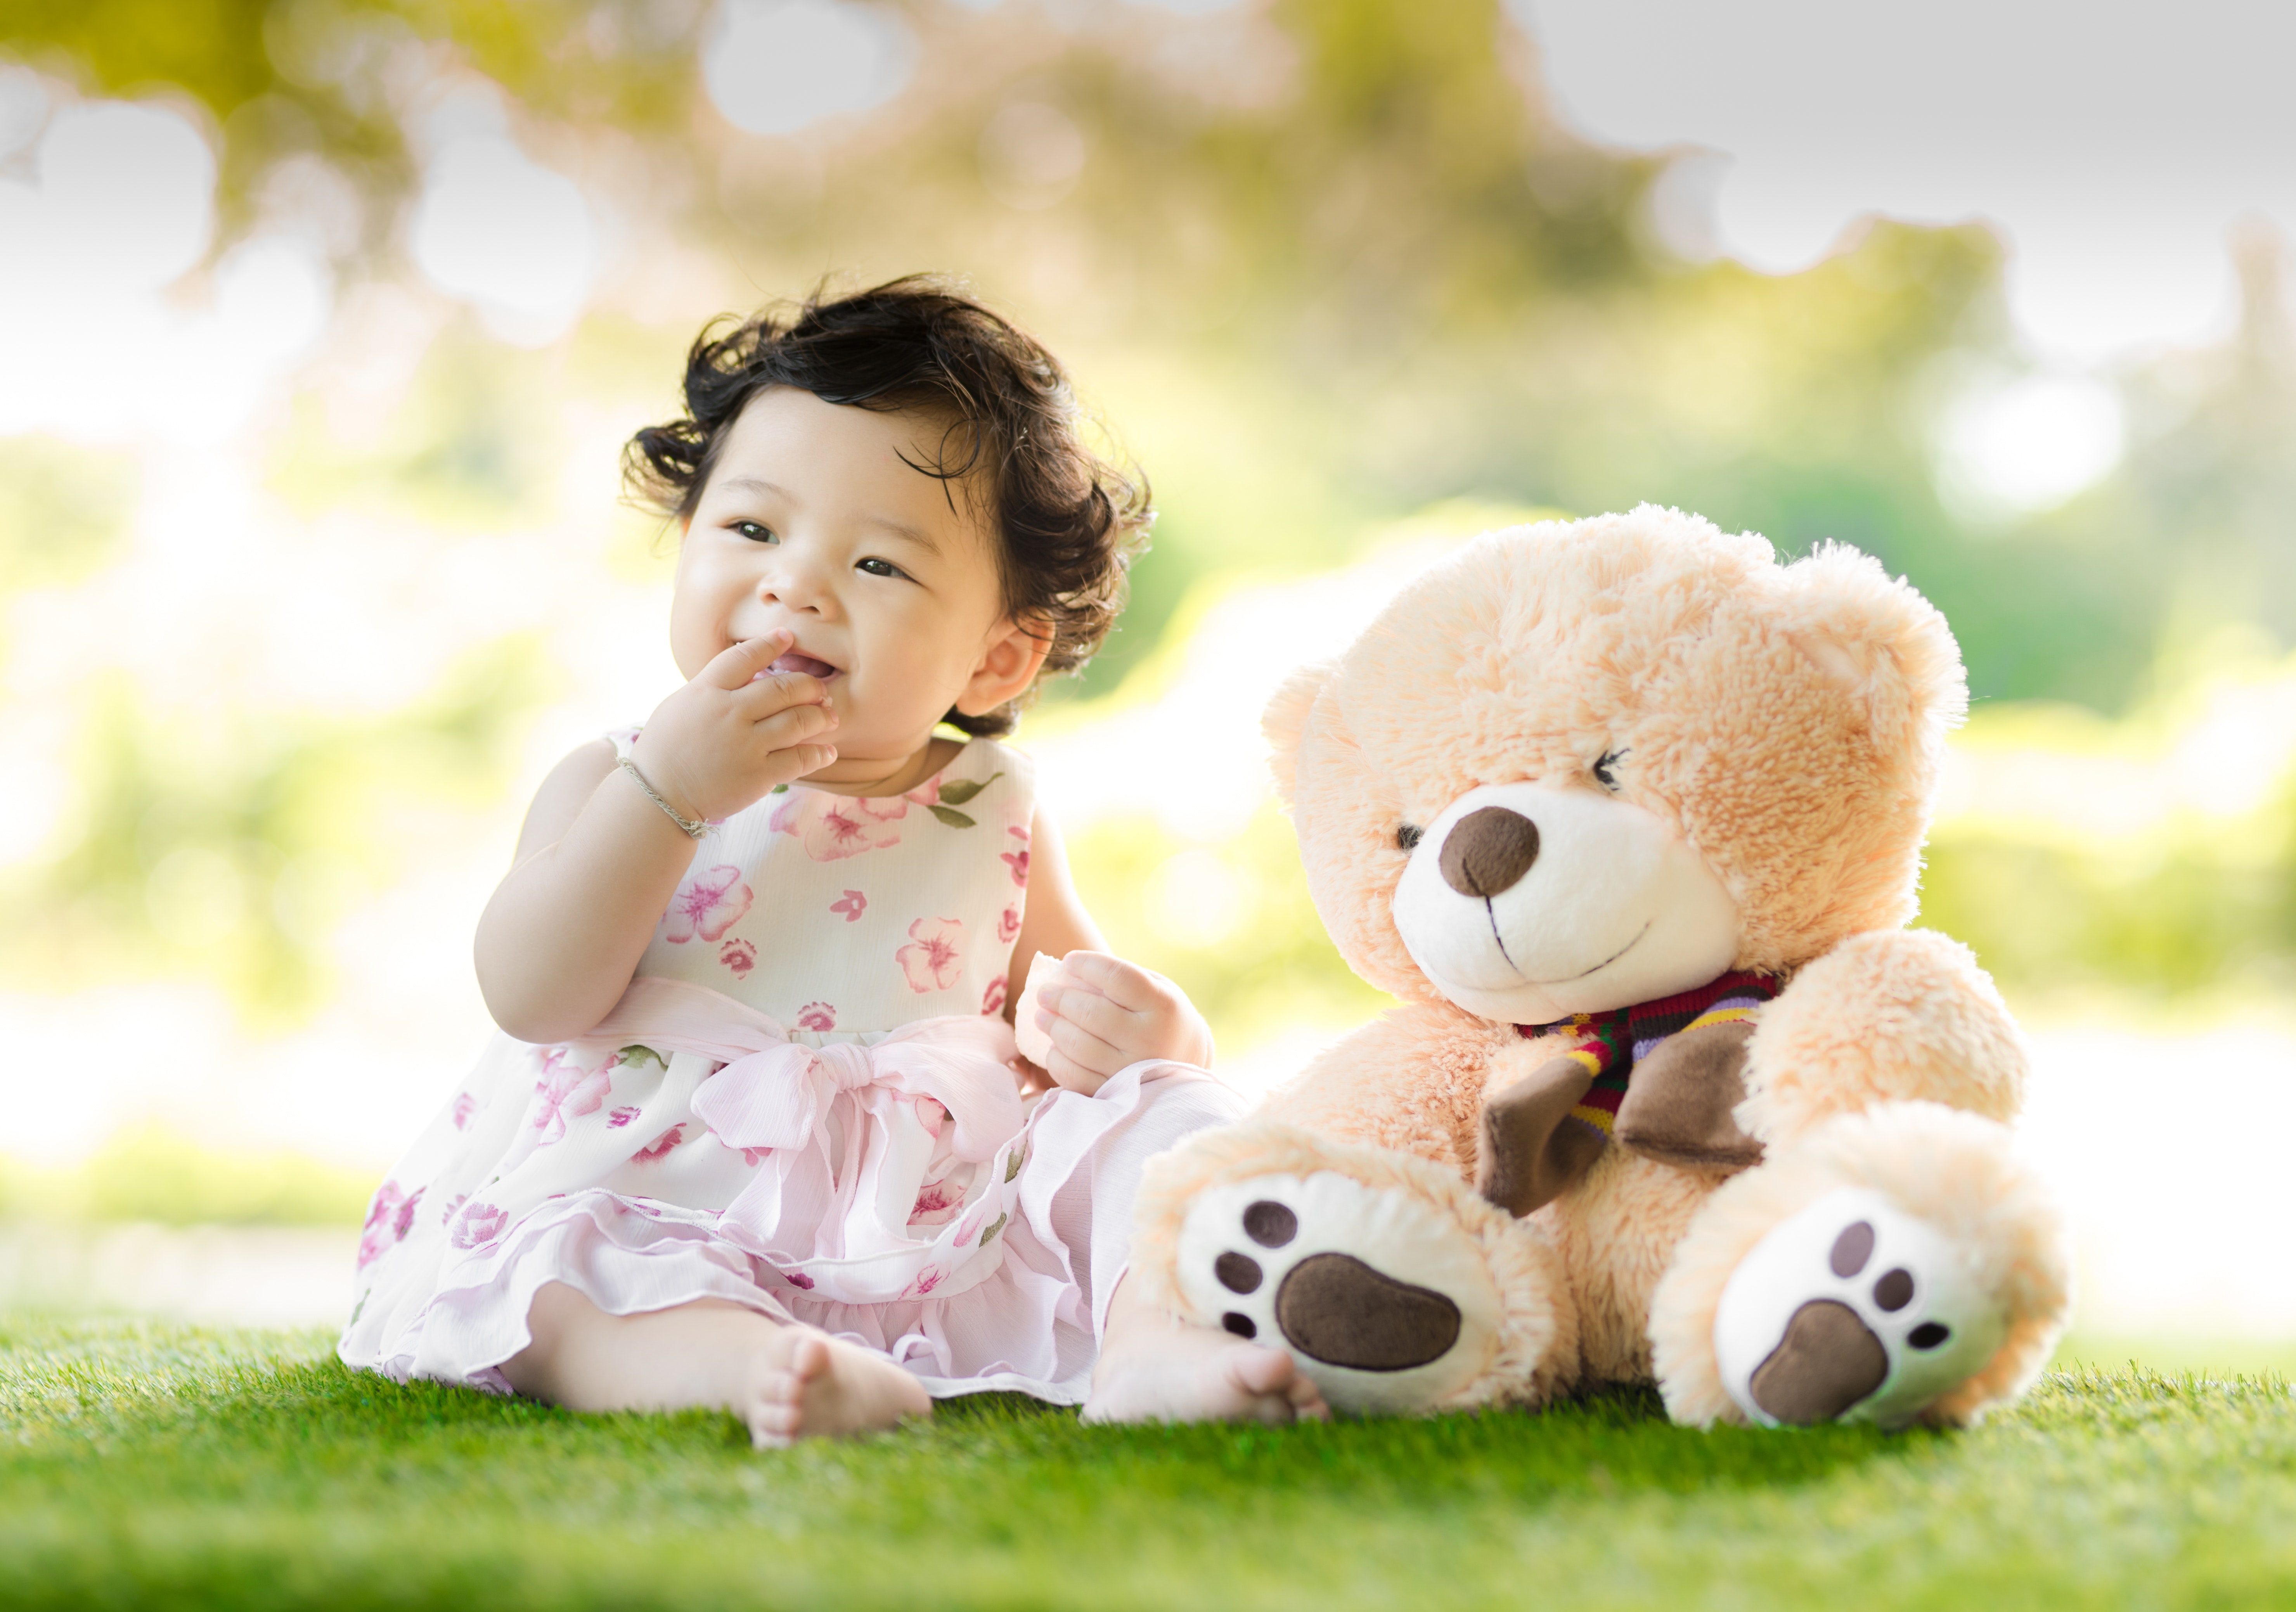 adorable-baby-beautiful-1166473